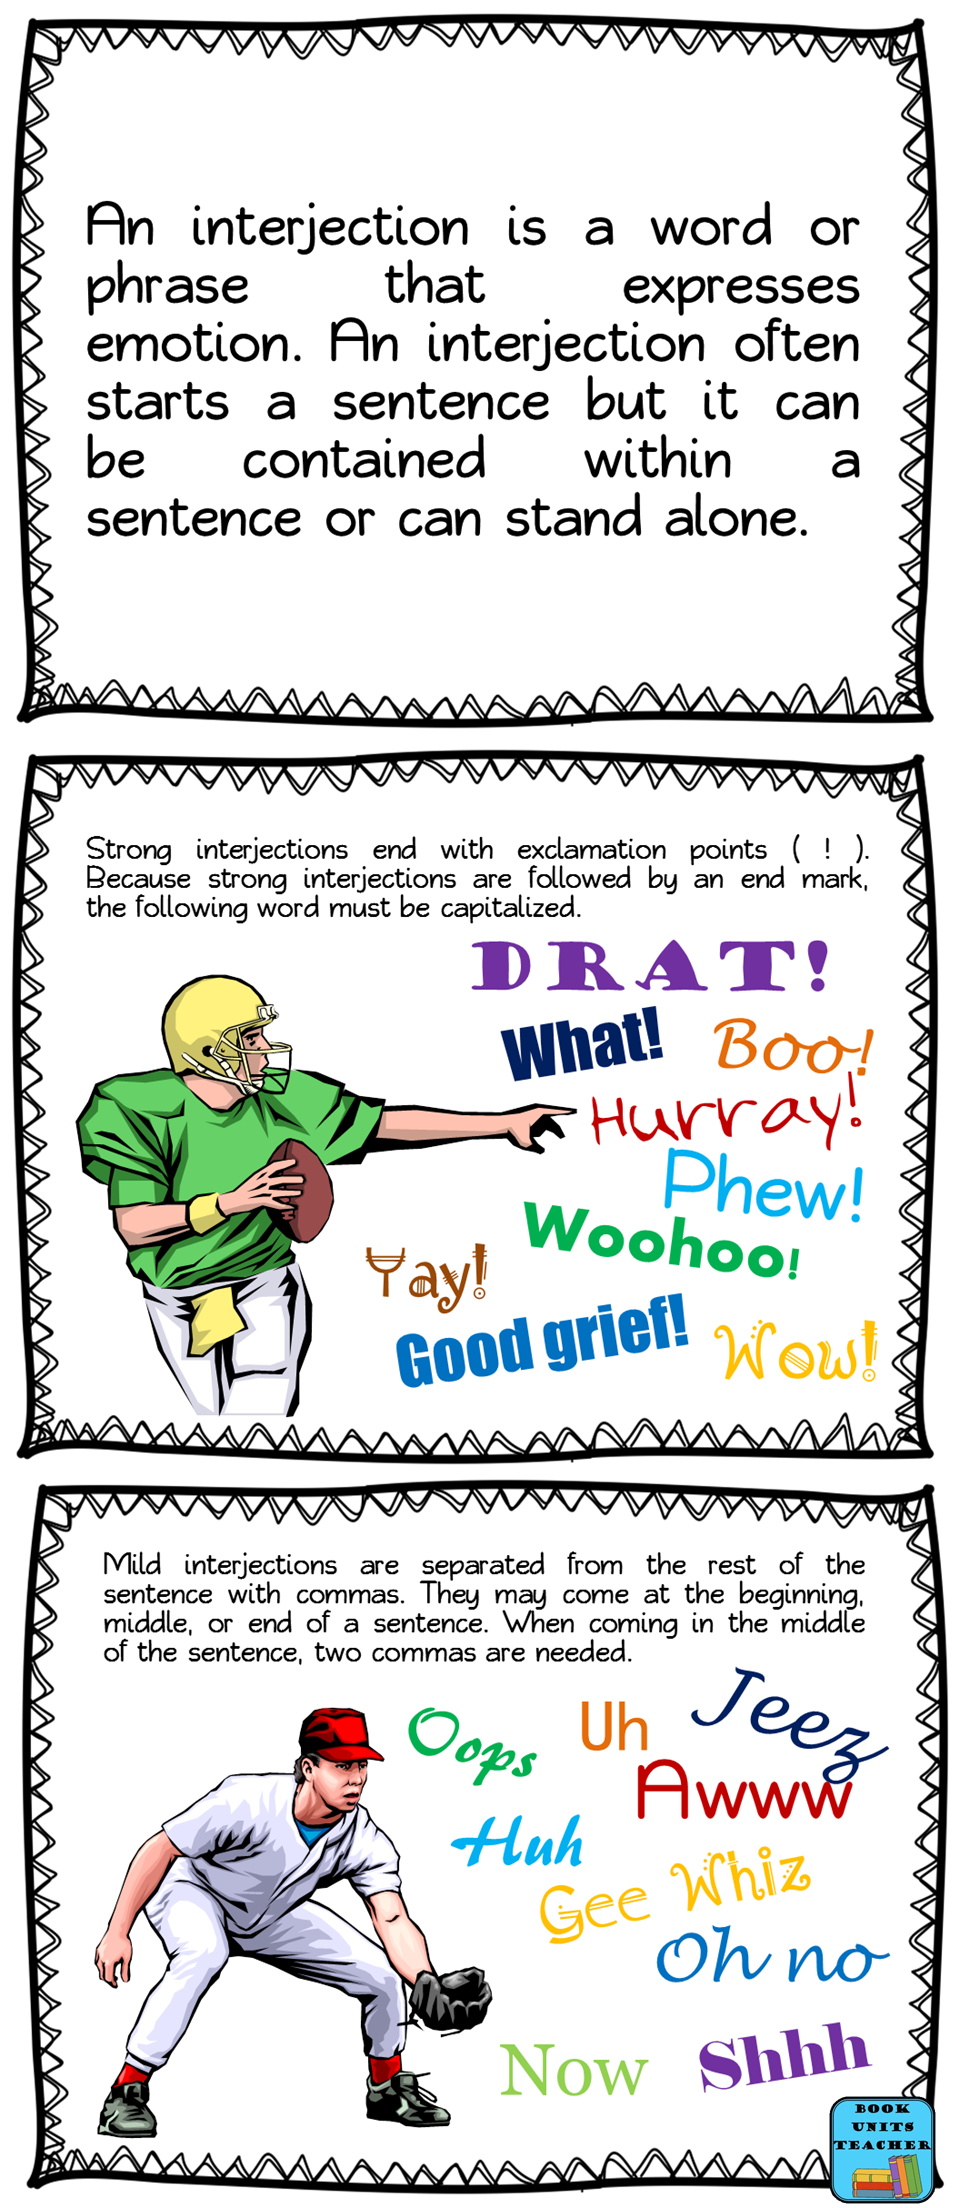 worksheet Interjection Worksheet 78 best images about interjections on pinterest schoolhouse rock language and student